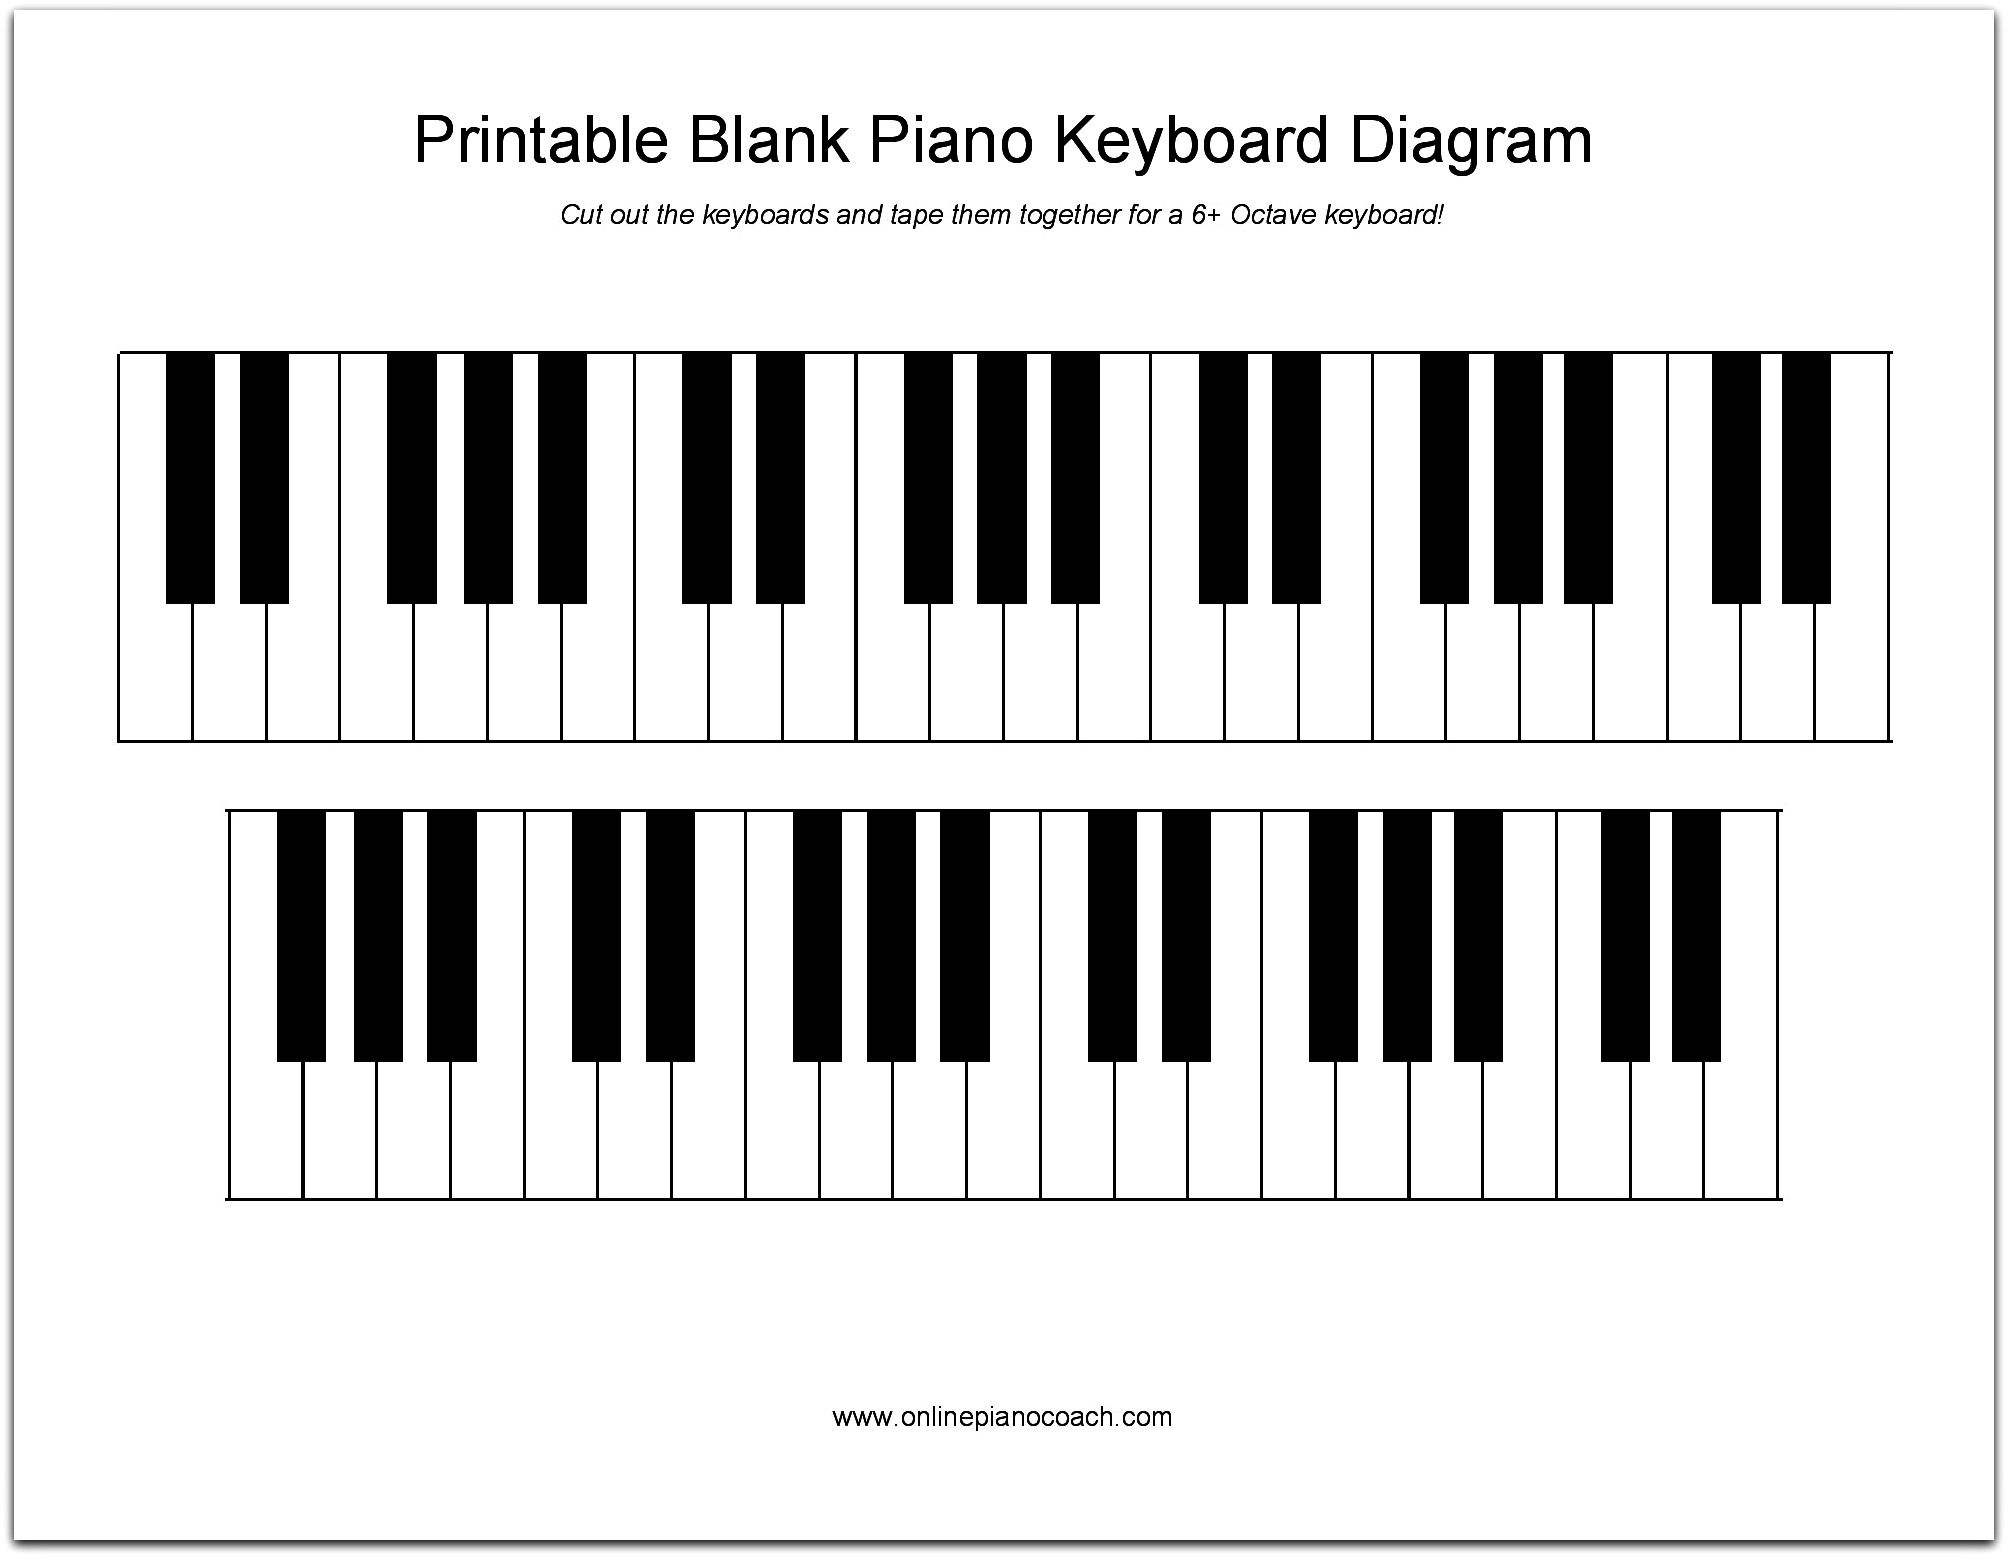 printable piano keyboard diagram in 2019 piano lessons. Black Bedroom Furniture Sets. Home Design Ideas